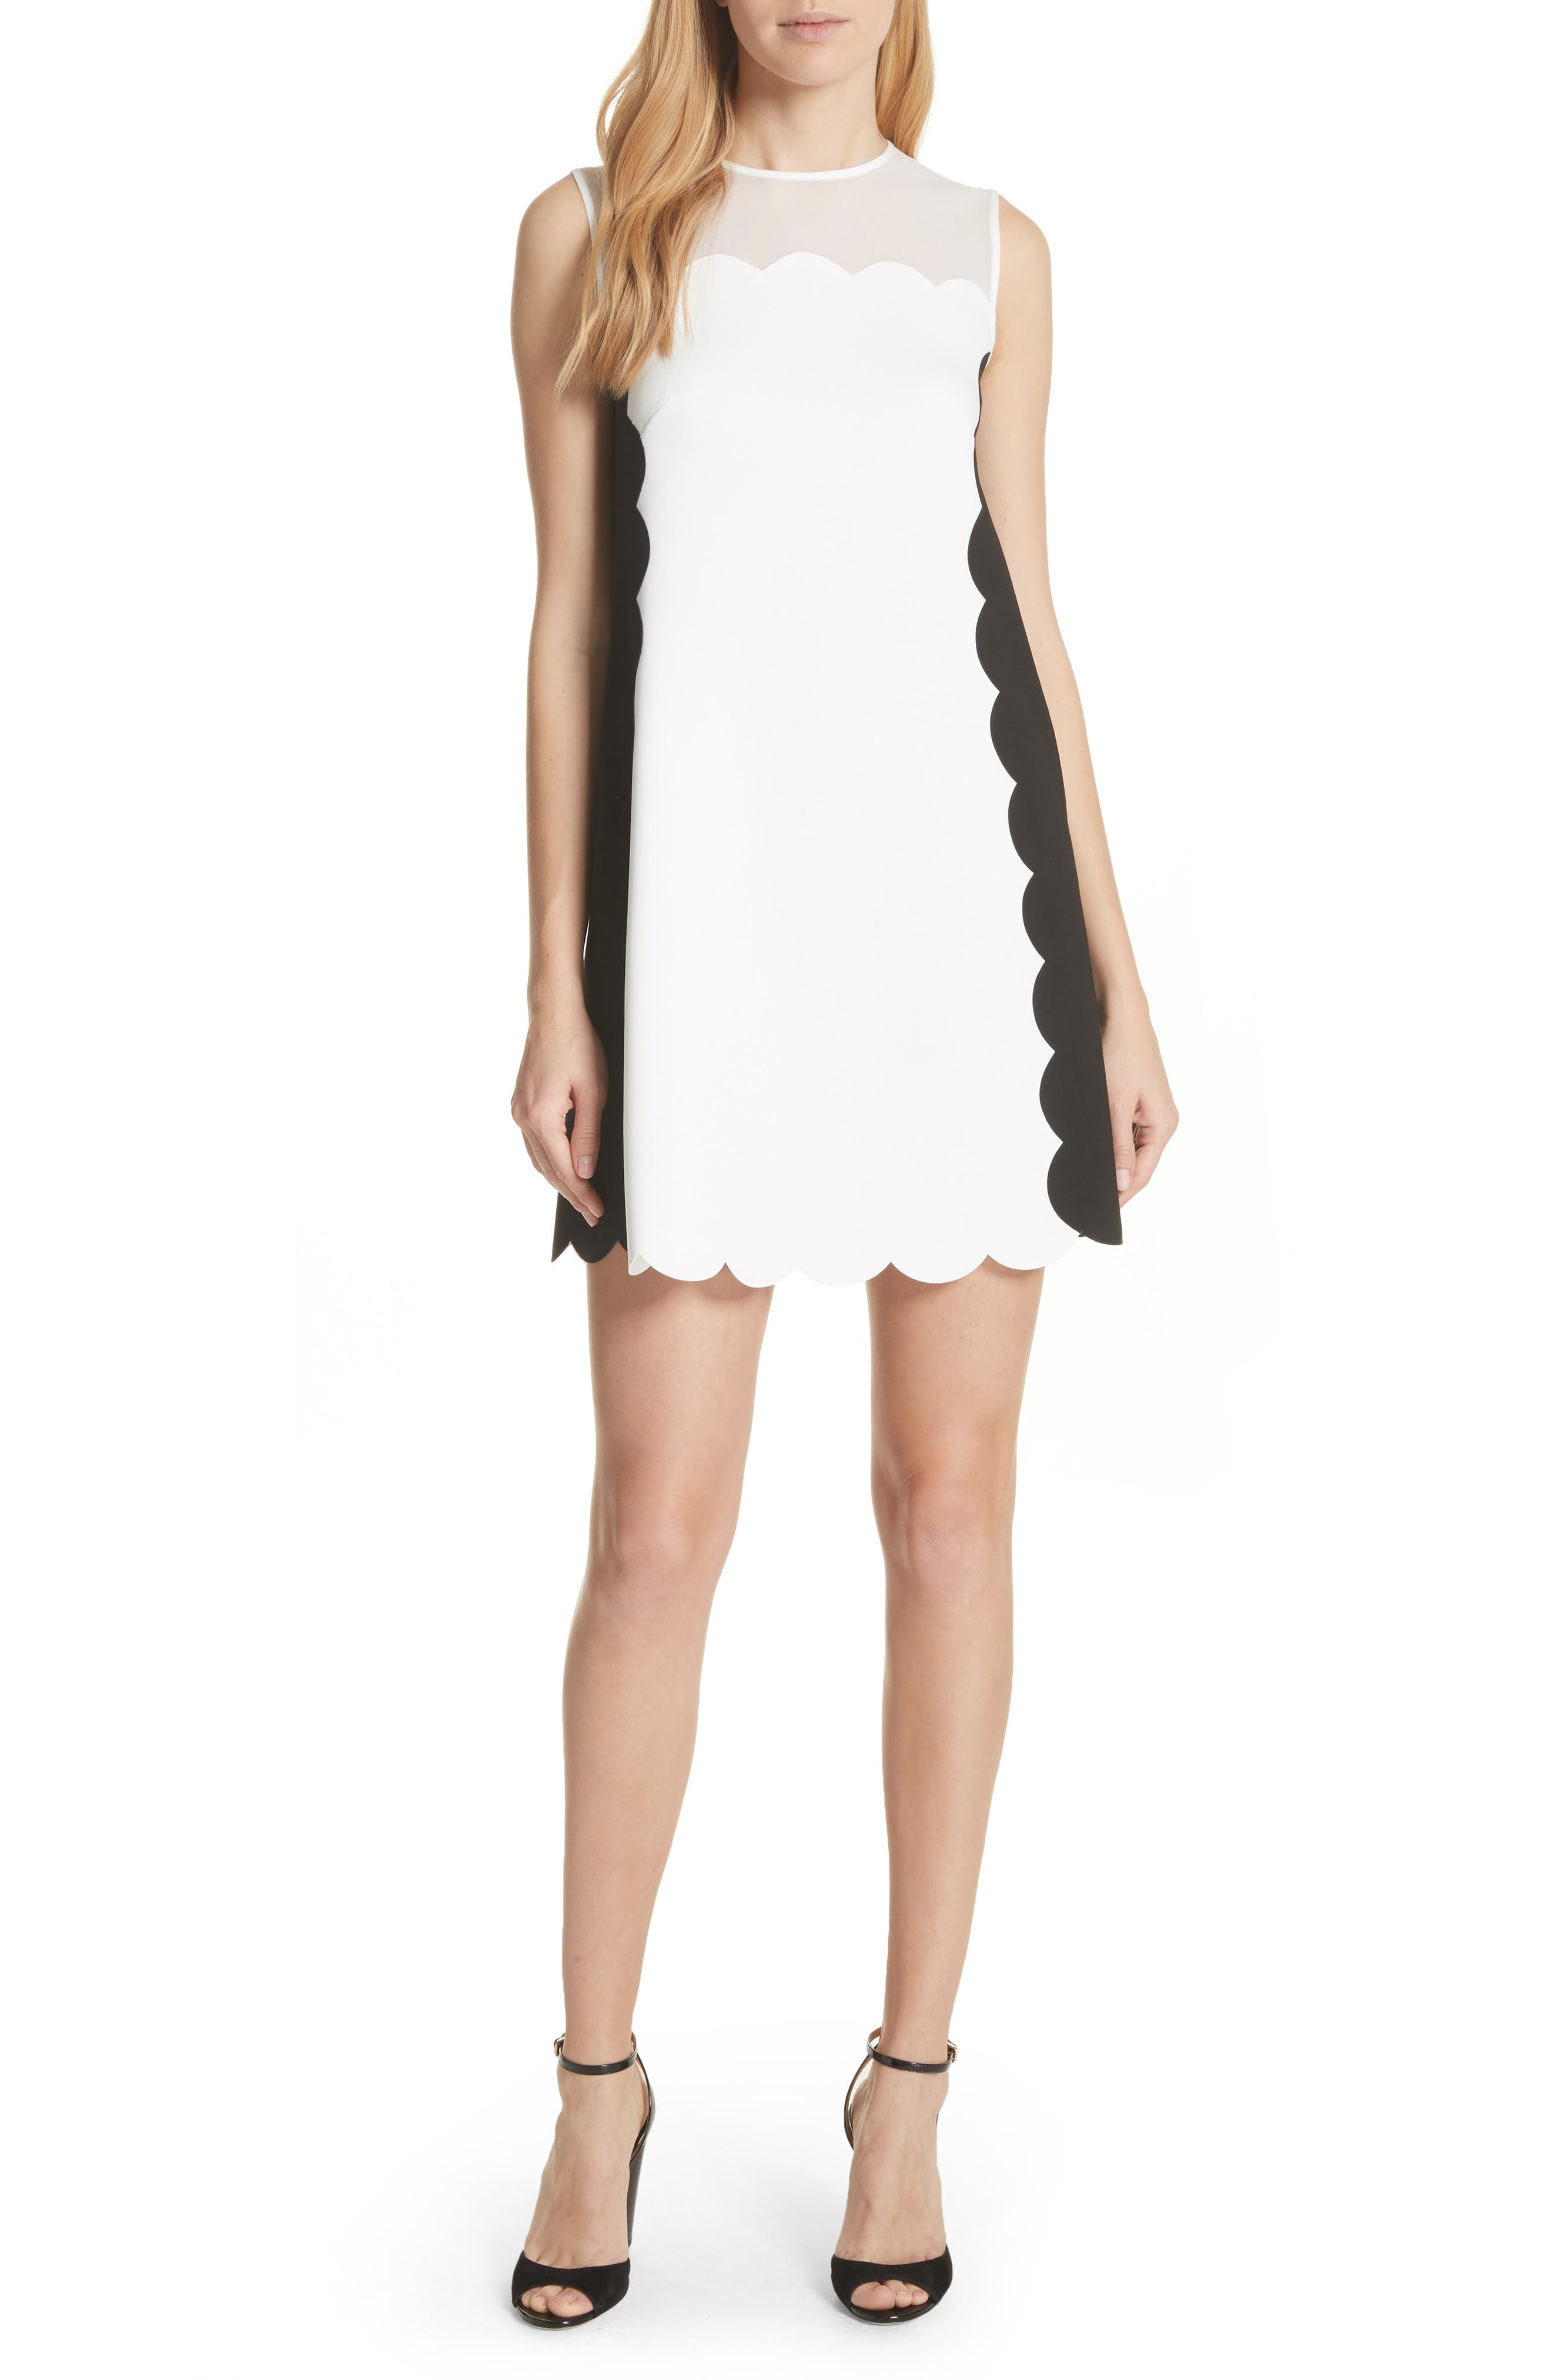 TED BAKER LONDON,                             Contrast Scallop Overlay A-Line Dress,                             Main thumbnail 1, color,                             100